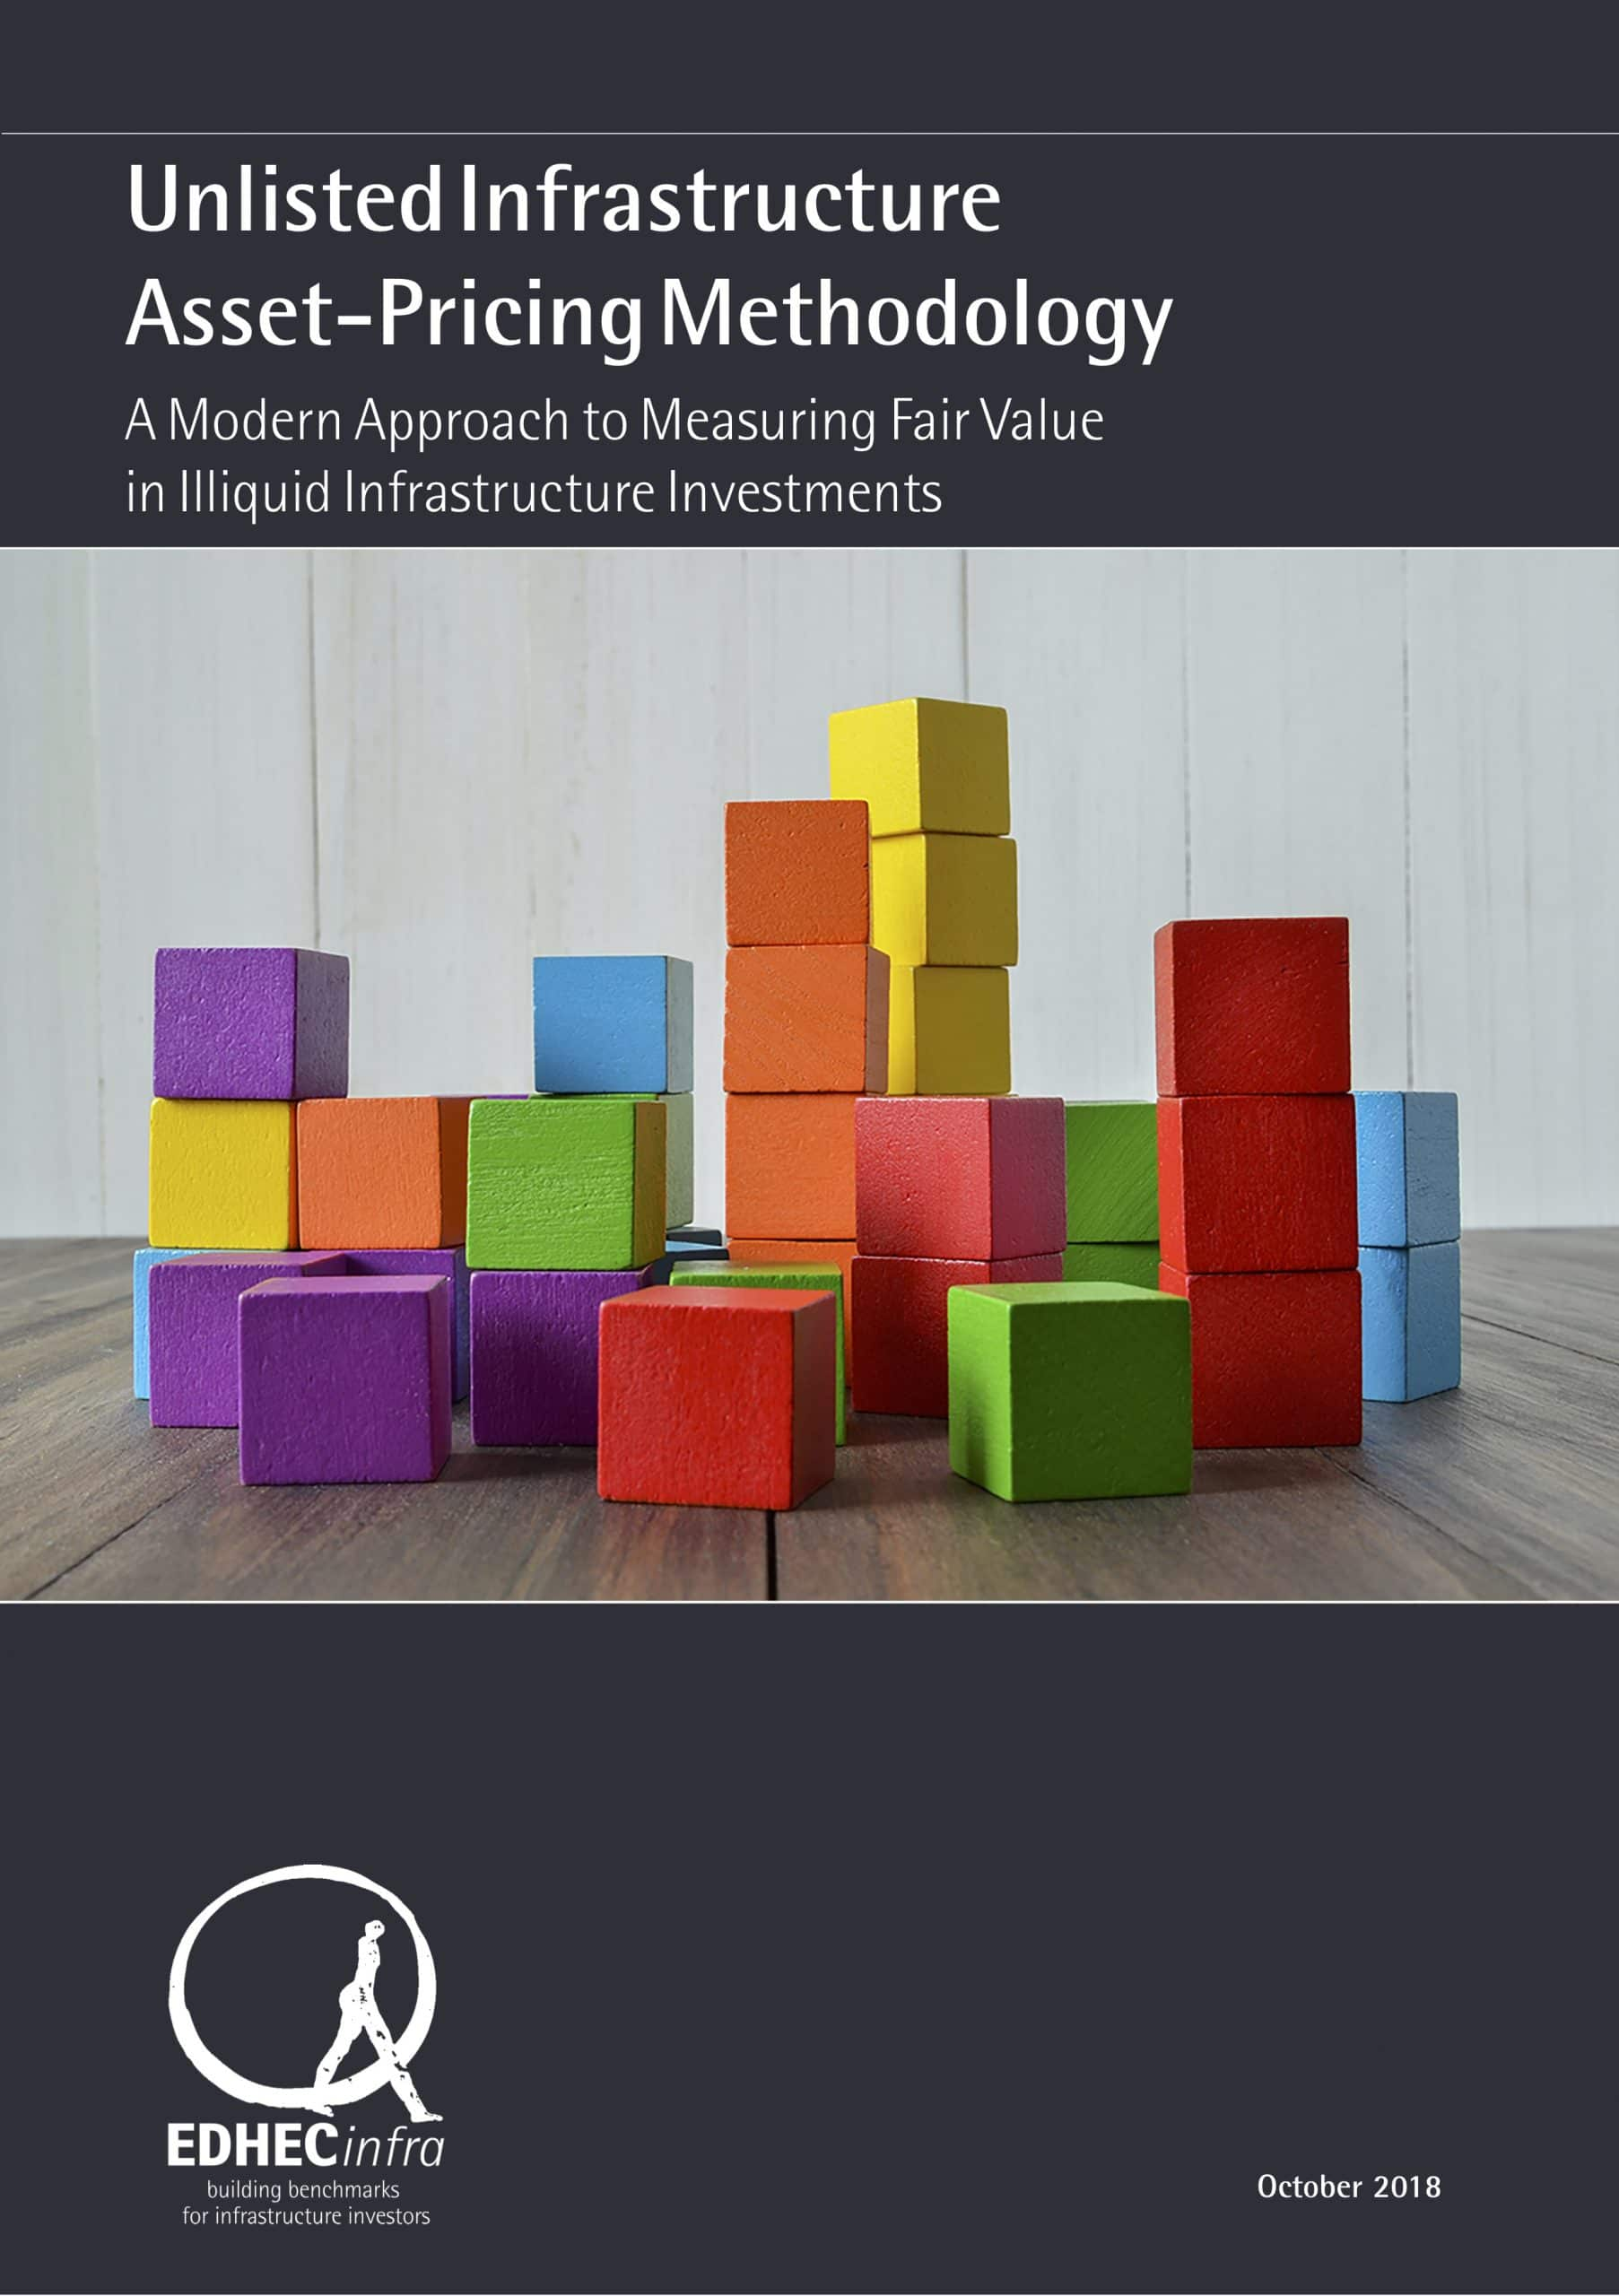 Unlisted Infrastructure Asset Pricing Methodology – A modern approach to measuring fair value in illiquid assets